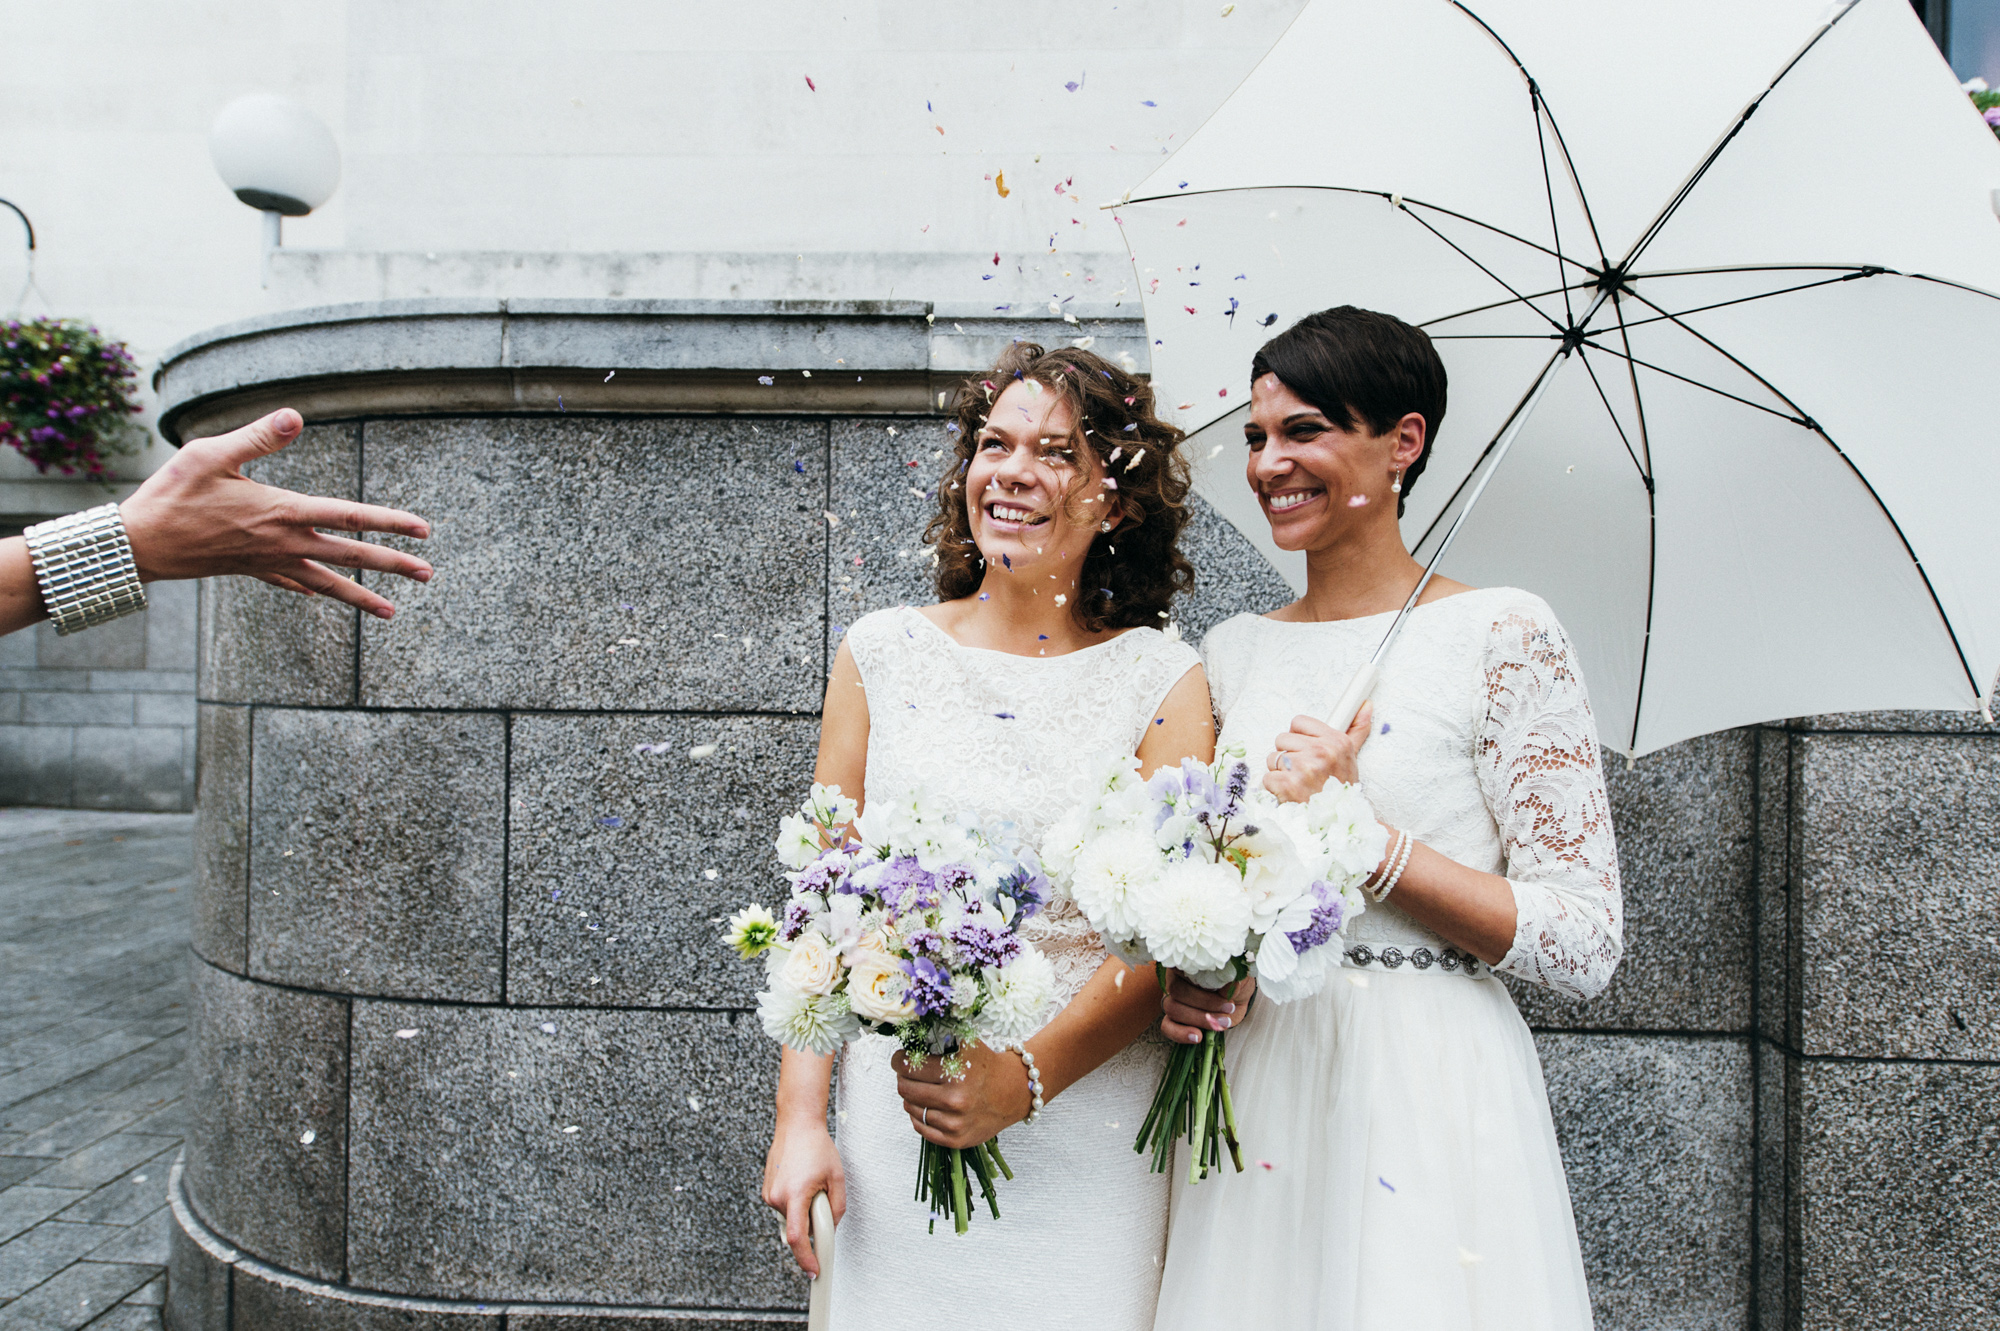 Smiling brides in short lace dresses, bouquets by The Flower Appreciation Society - gay wedding The Roost Dalston wedding - quirky London wedding photographer © Babb Photo